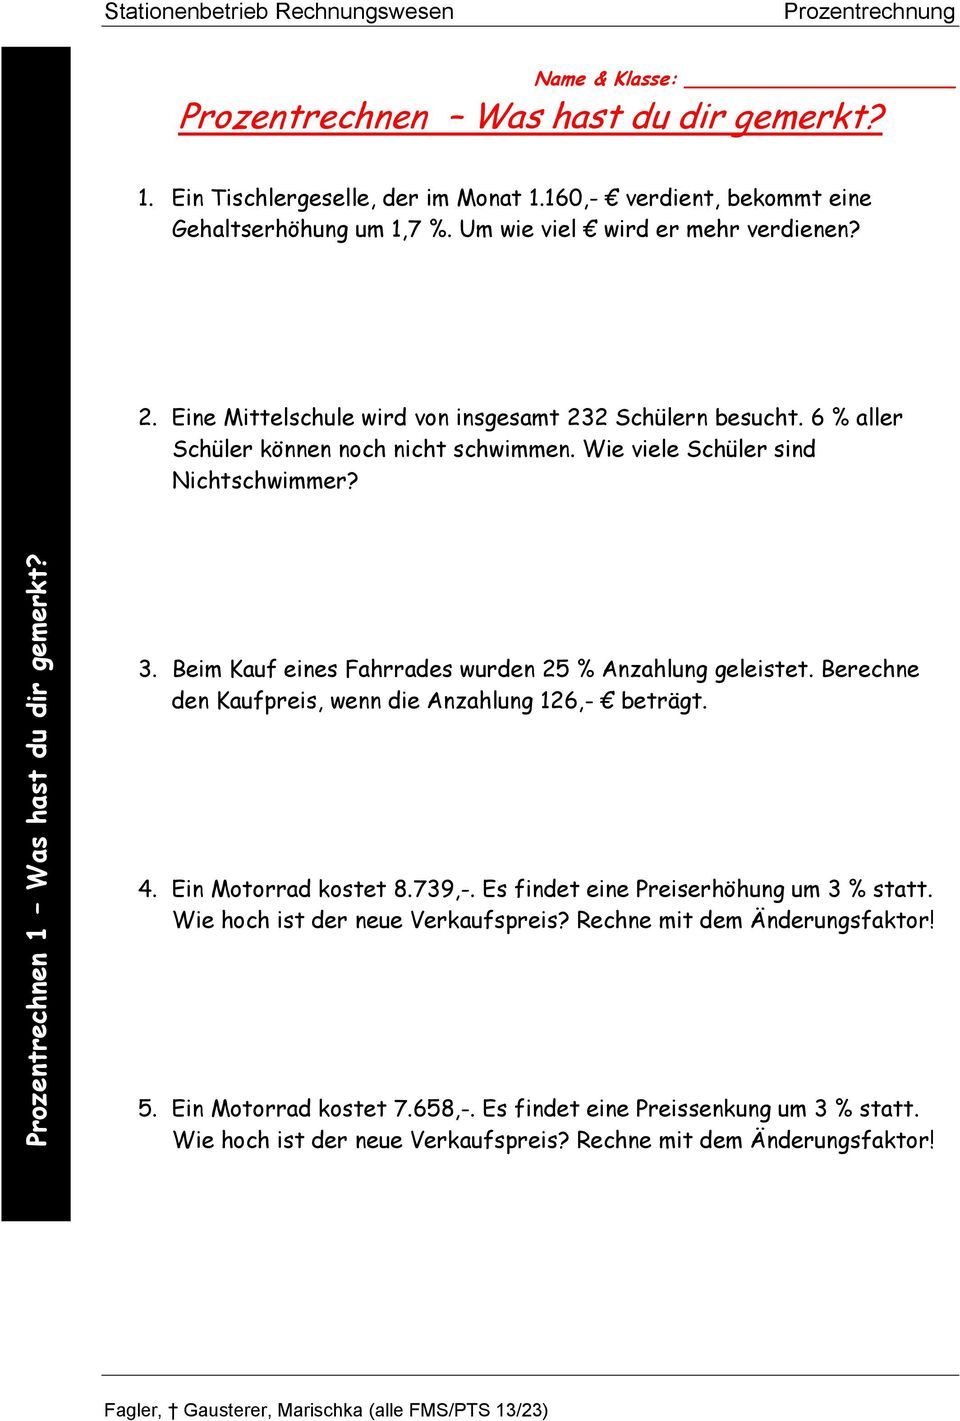 prozentrechnung infoblatt pdf. Black Bedroom Furniture Sets. Home Design Ideas